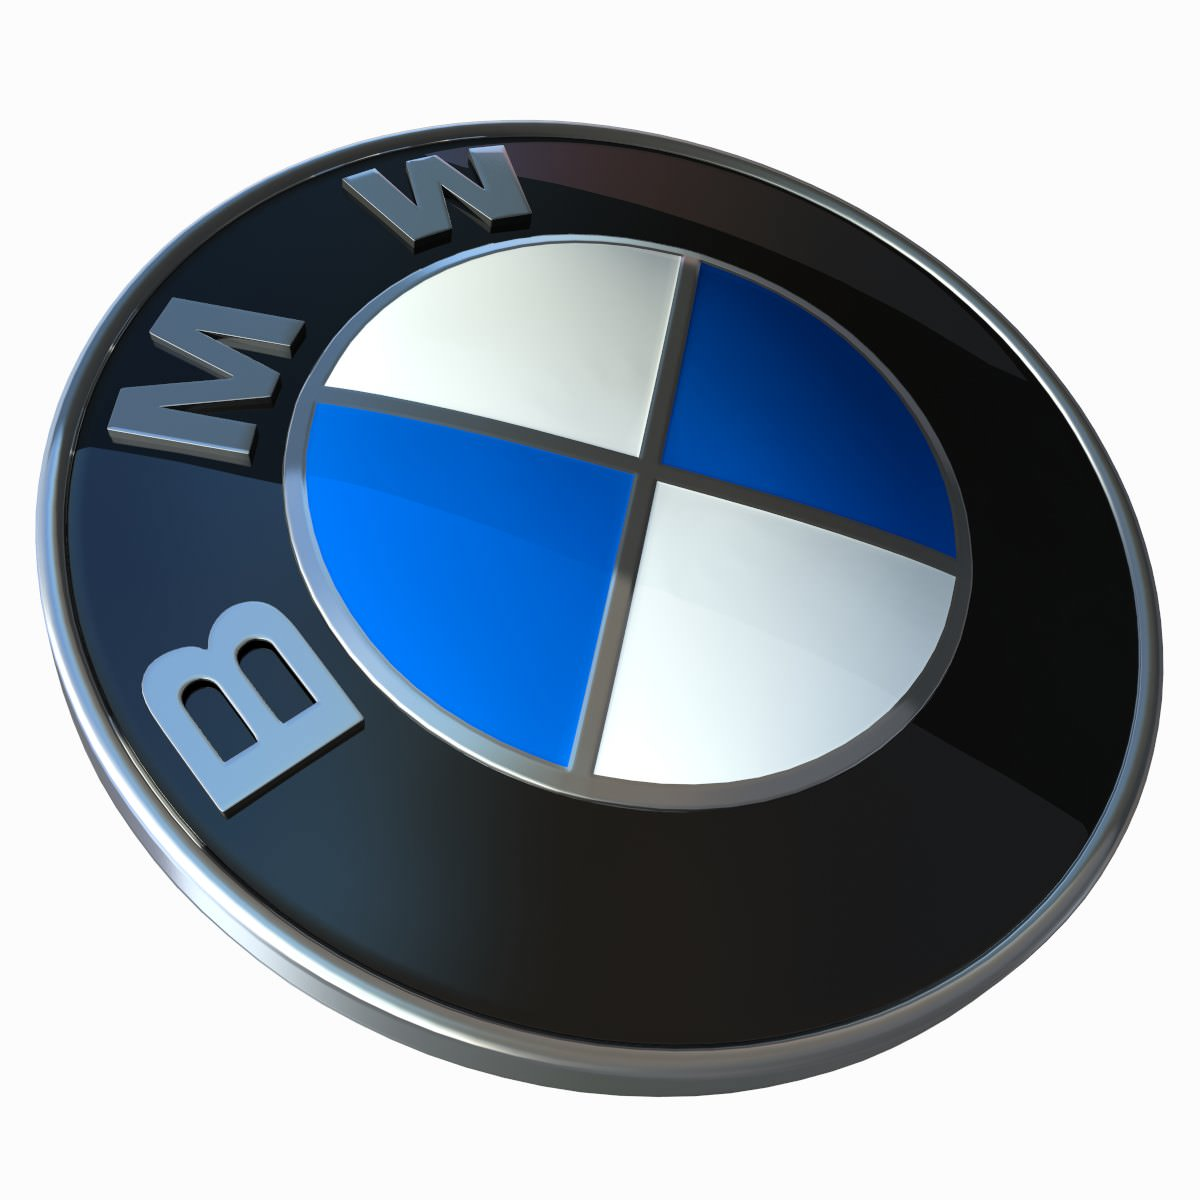 bmw-logo-3d-model-low-poly-max.jpg